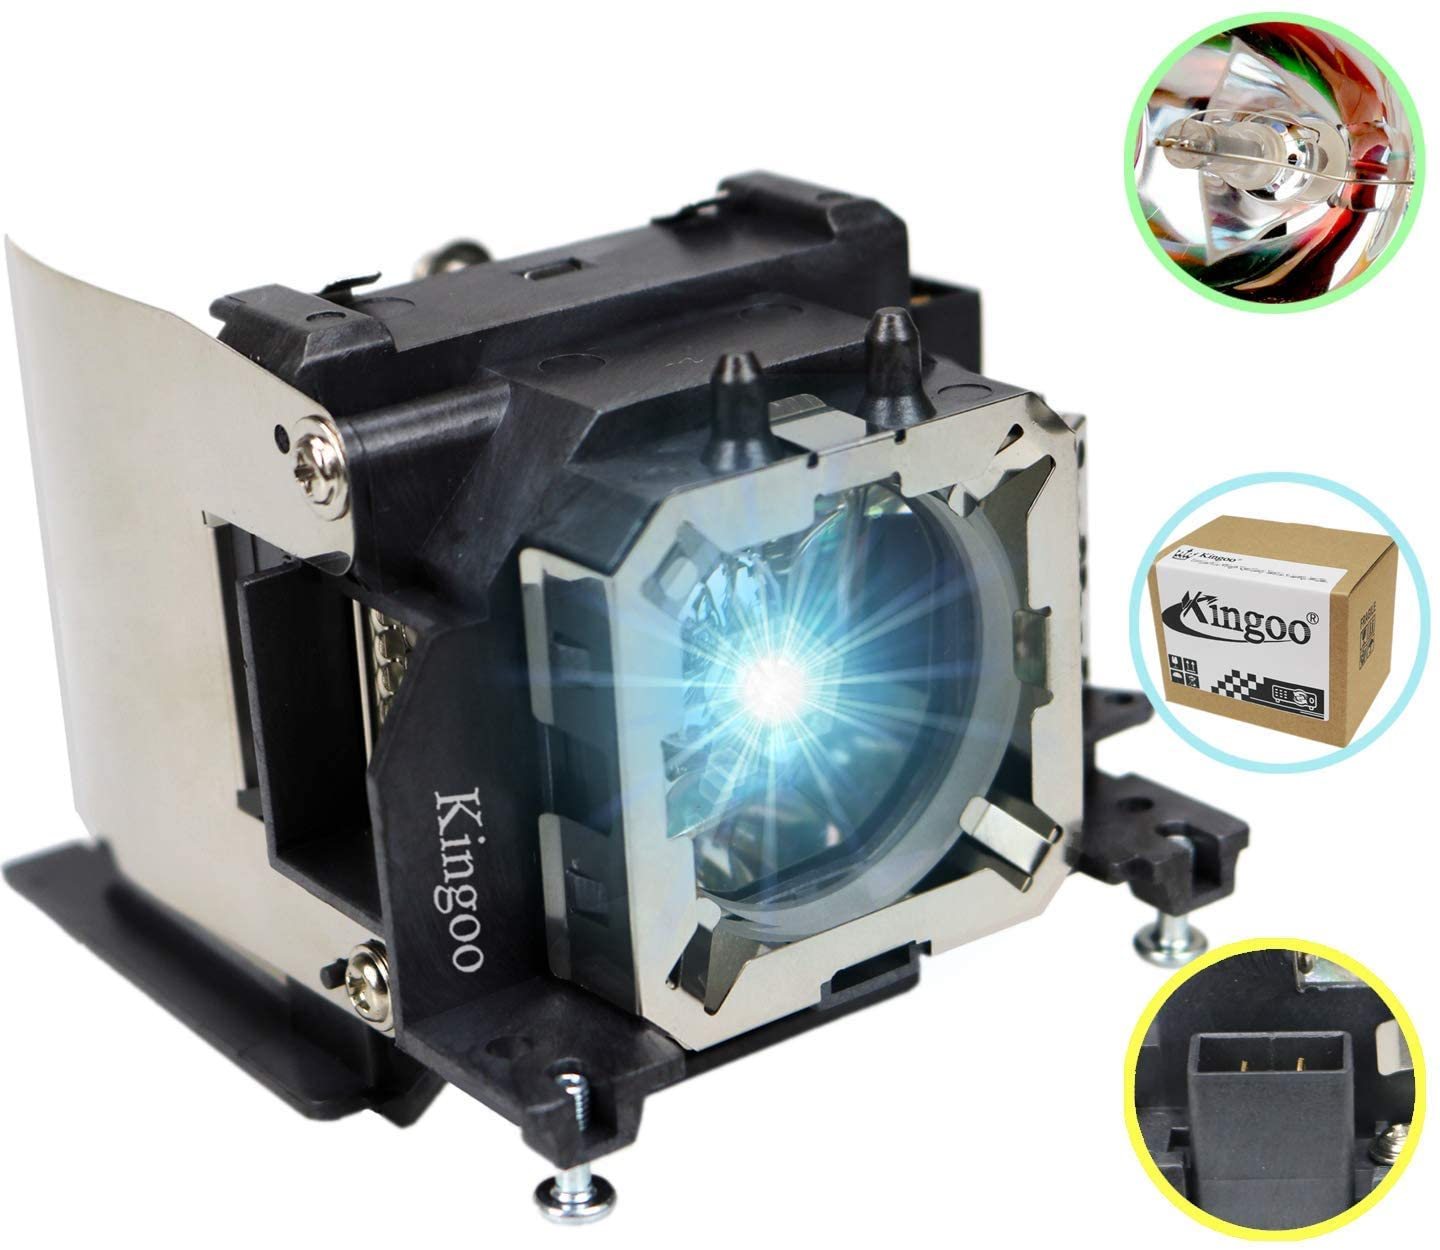 Kingoo Excellent Projector Lamp for PANASONIC PT-VX420 ET-LAV300 Replacement Projector Lamp Bulb with Housing